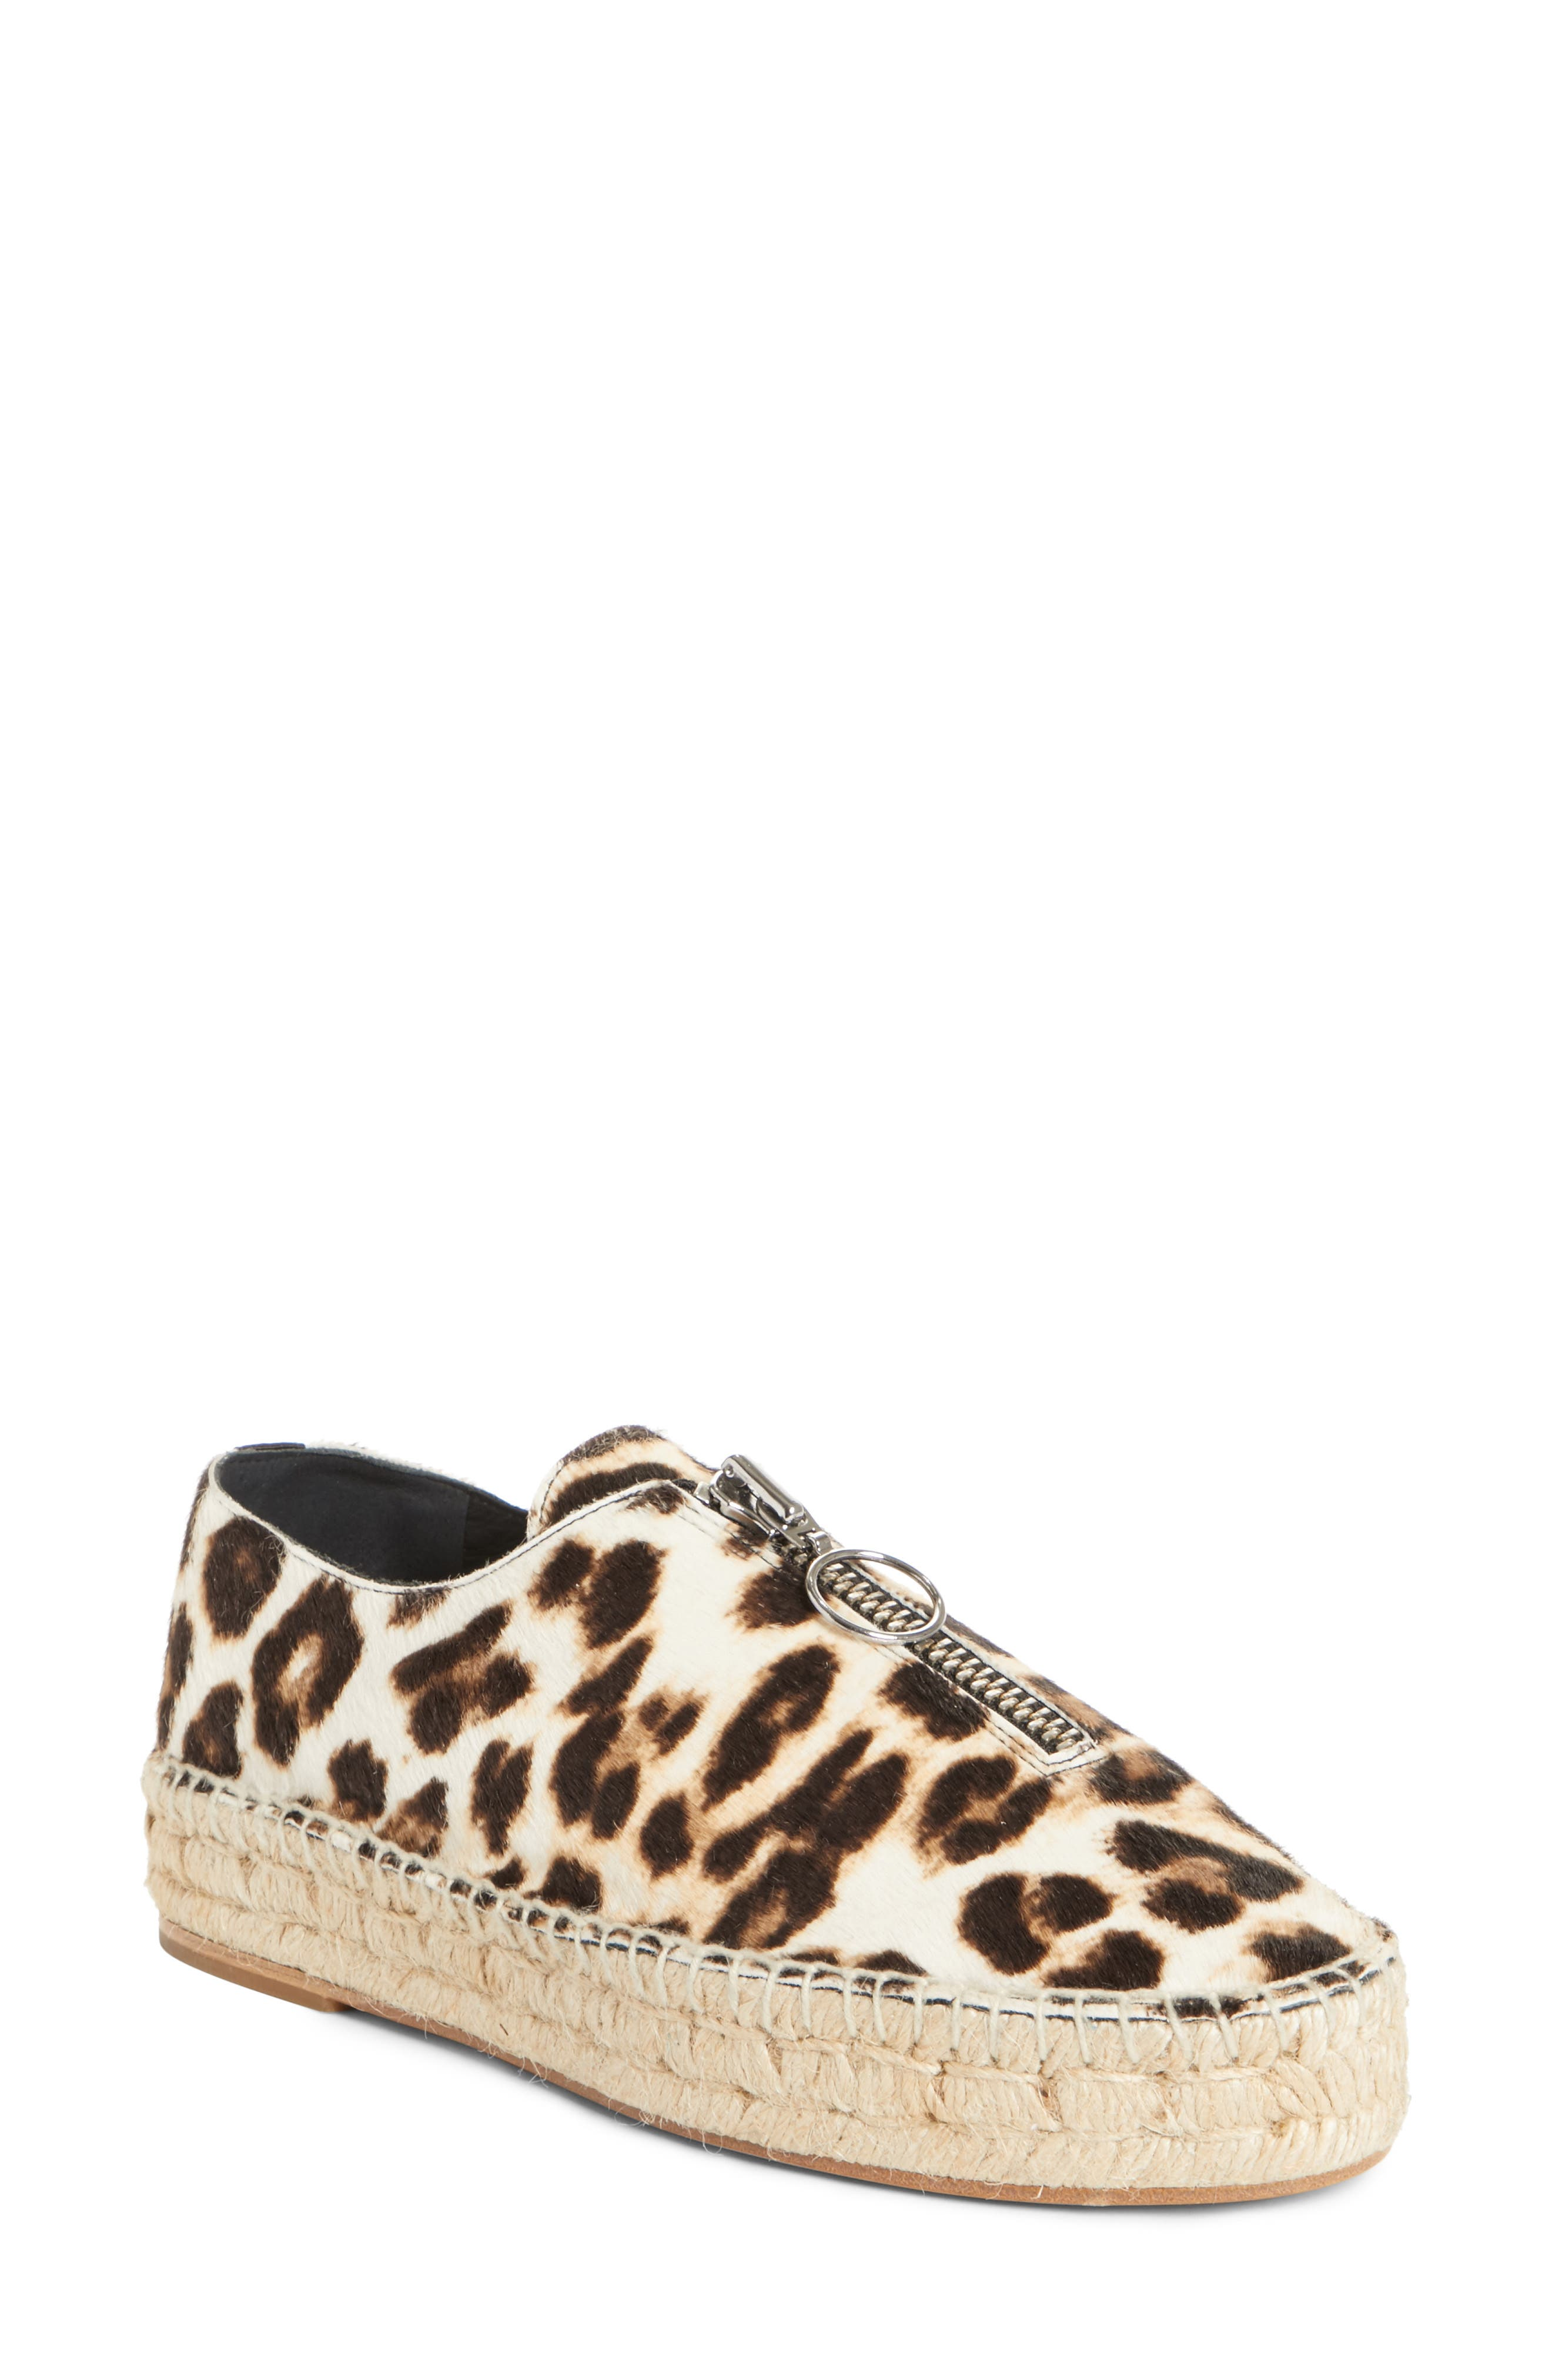 Alexander Wang 'Devon' Genuine Calf Hair Espadrille Flat (Women)